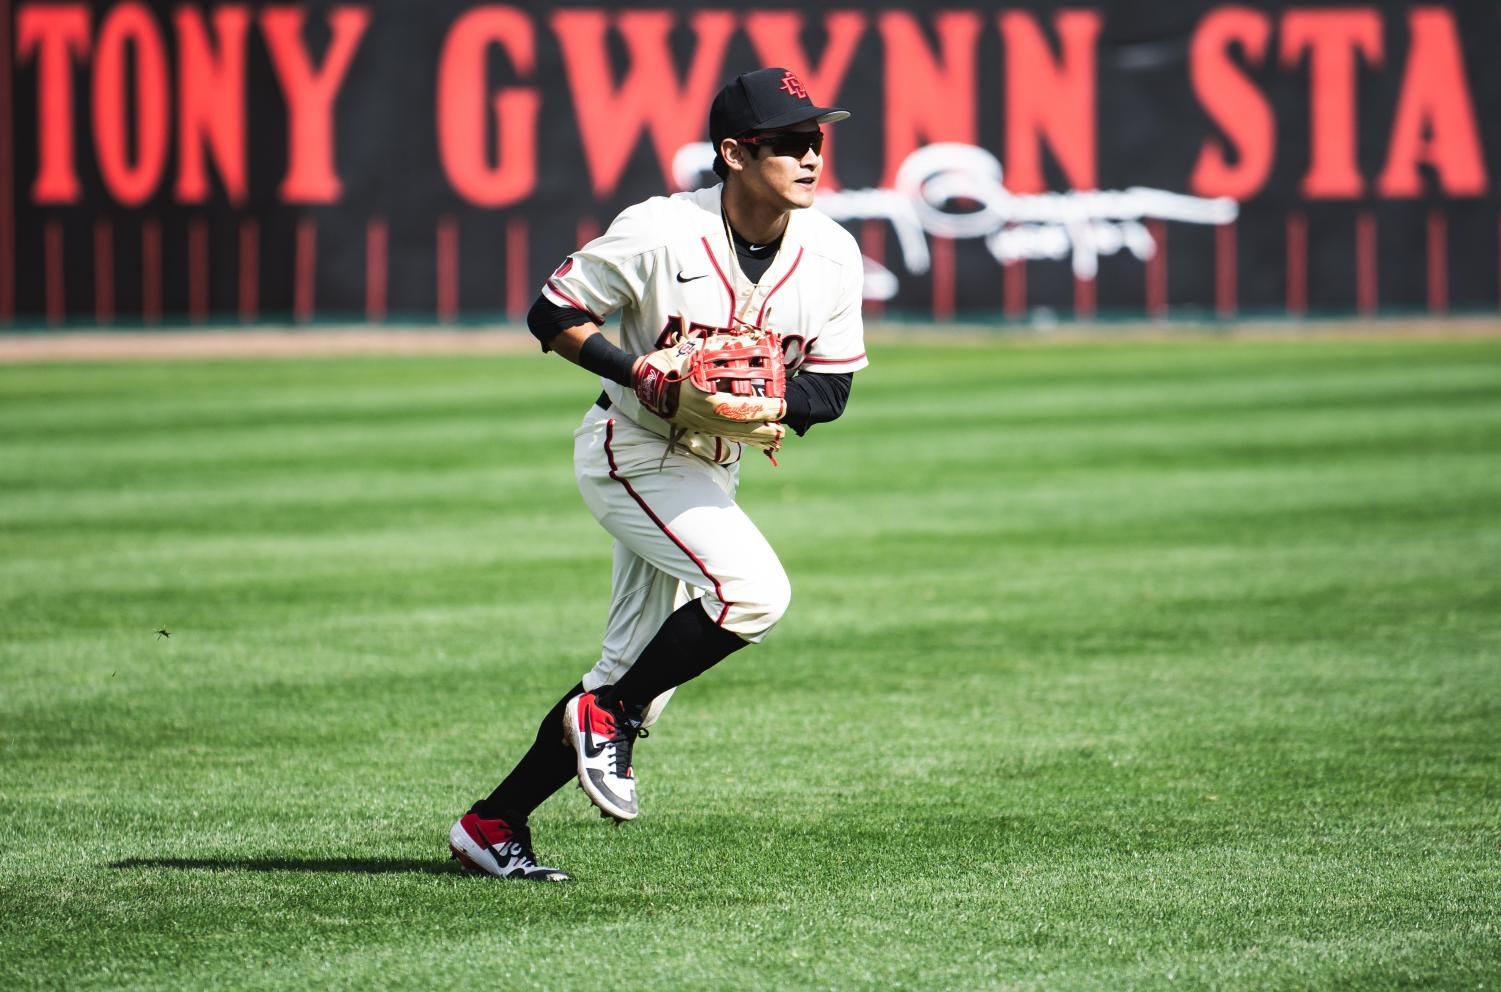 Then-sophomore left fielder Matt Rudick fields a ball in the outfield during the Aztecs 9-8 loss to San Francisco on Feb. 16, 2019 at Tony Gwynn Stadium.